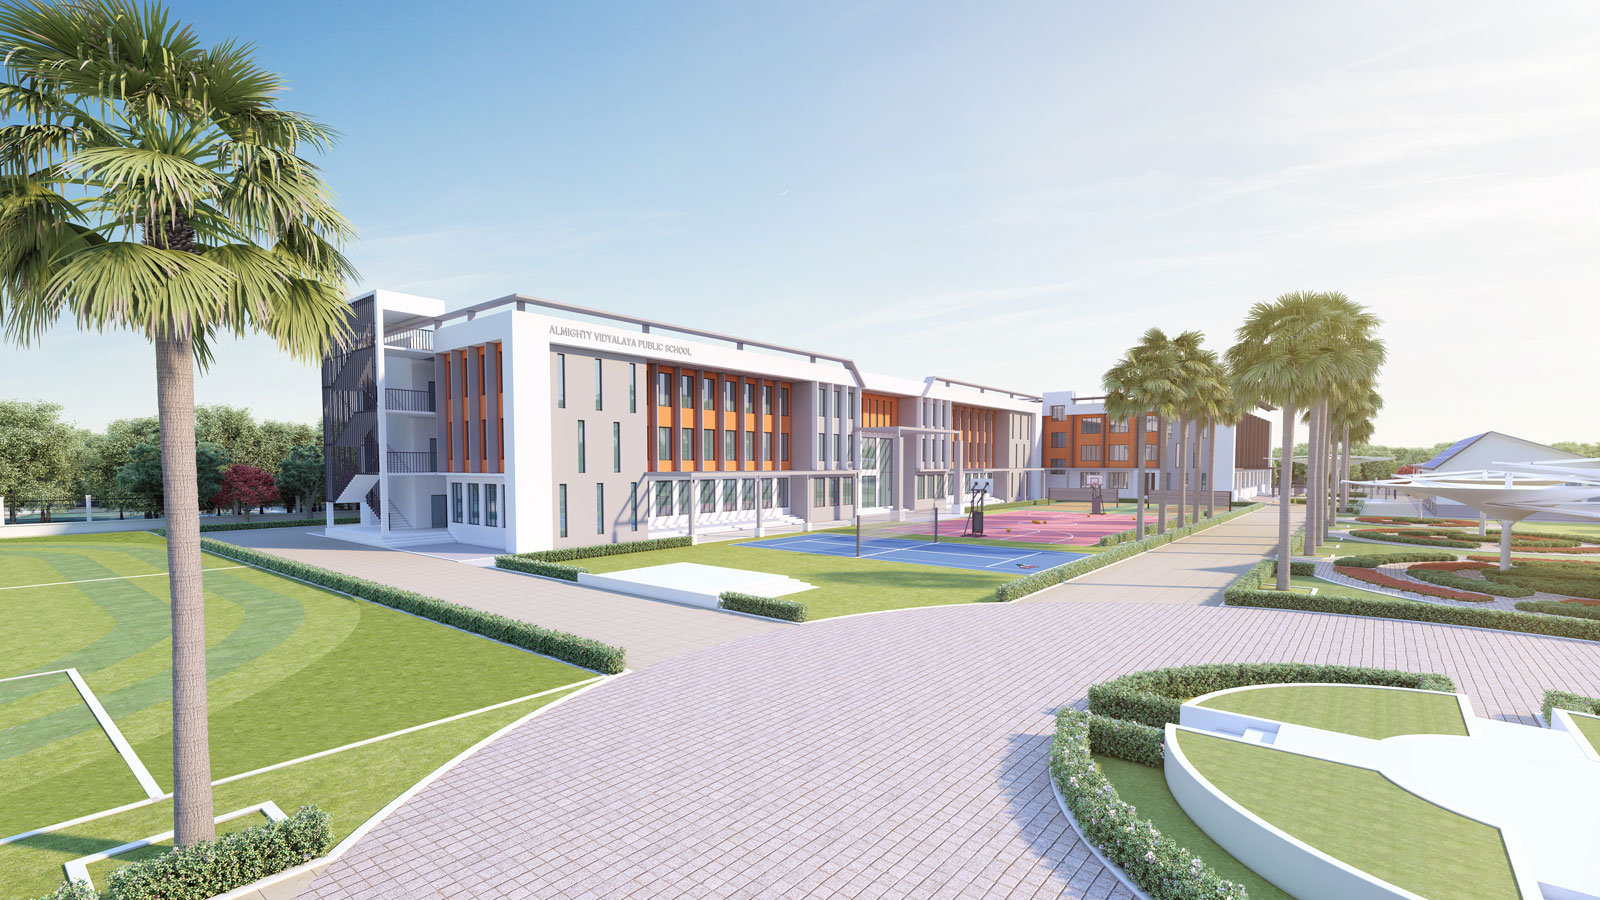 BEST SCHOOL ARCHITECTS FOR REMODELLING SCHOOL BUILDINGS IN INDIA